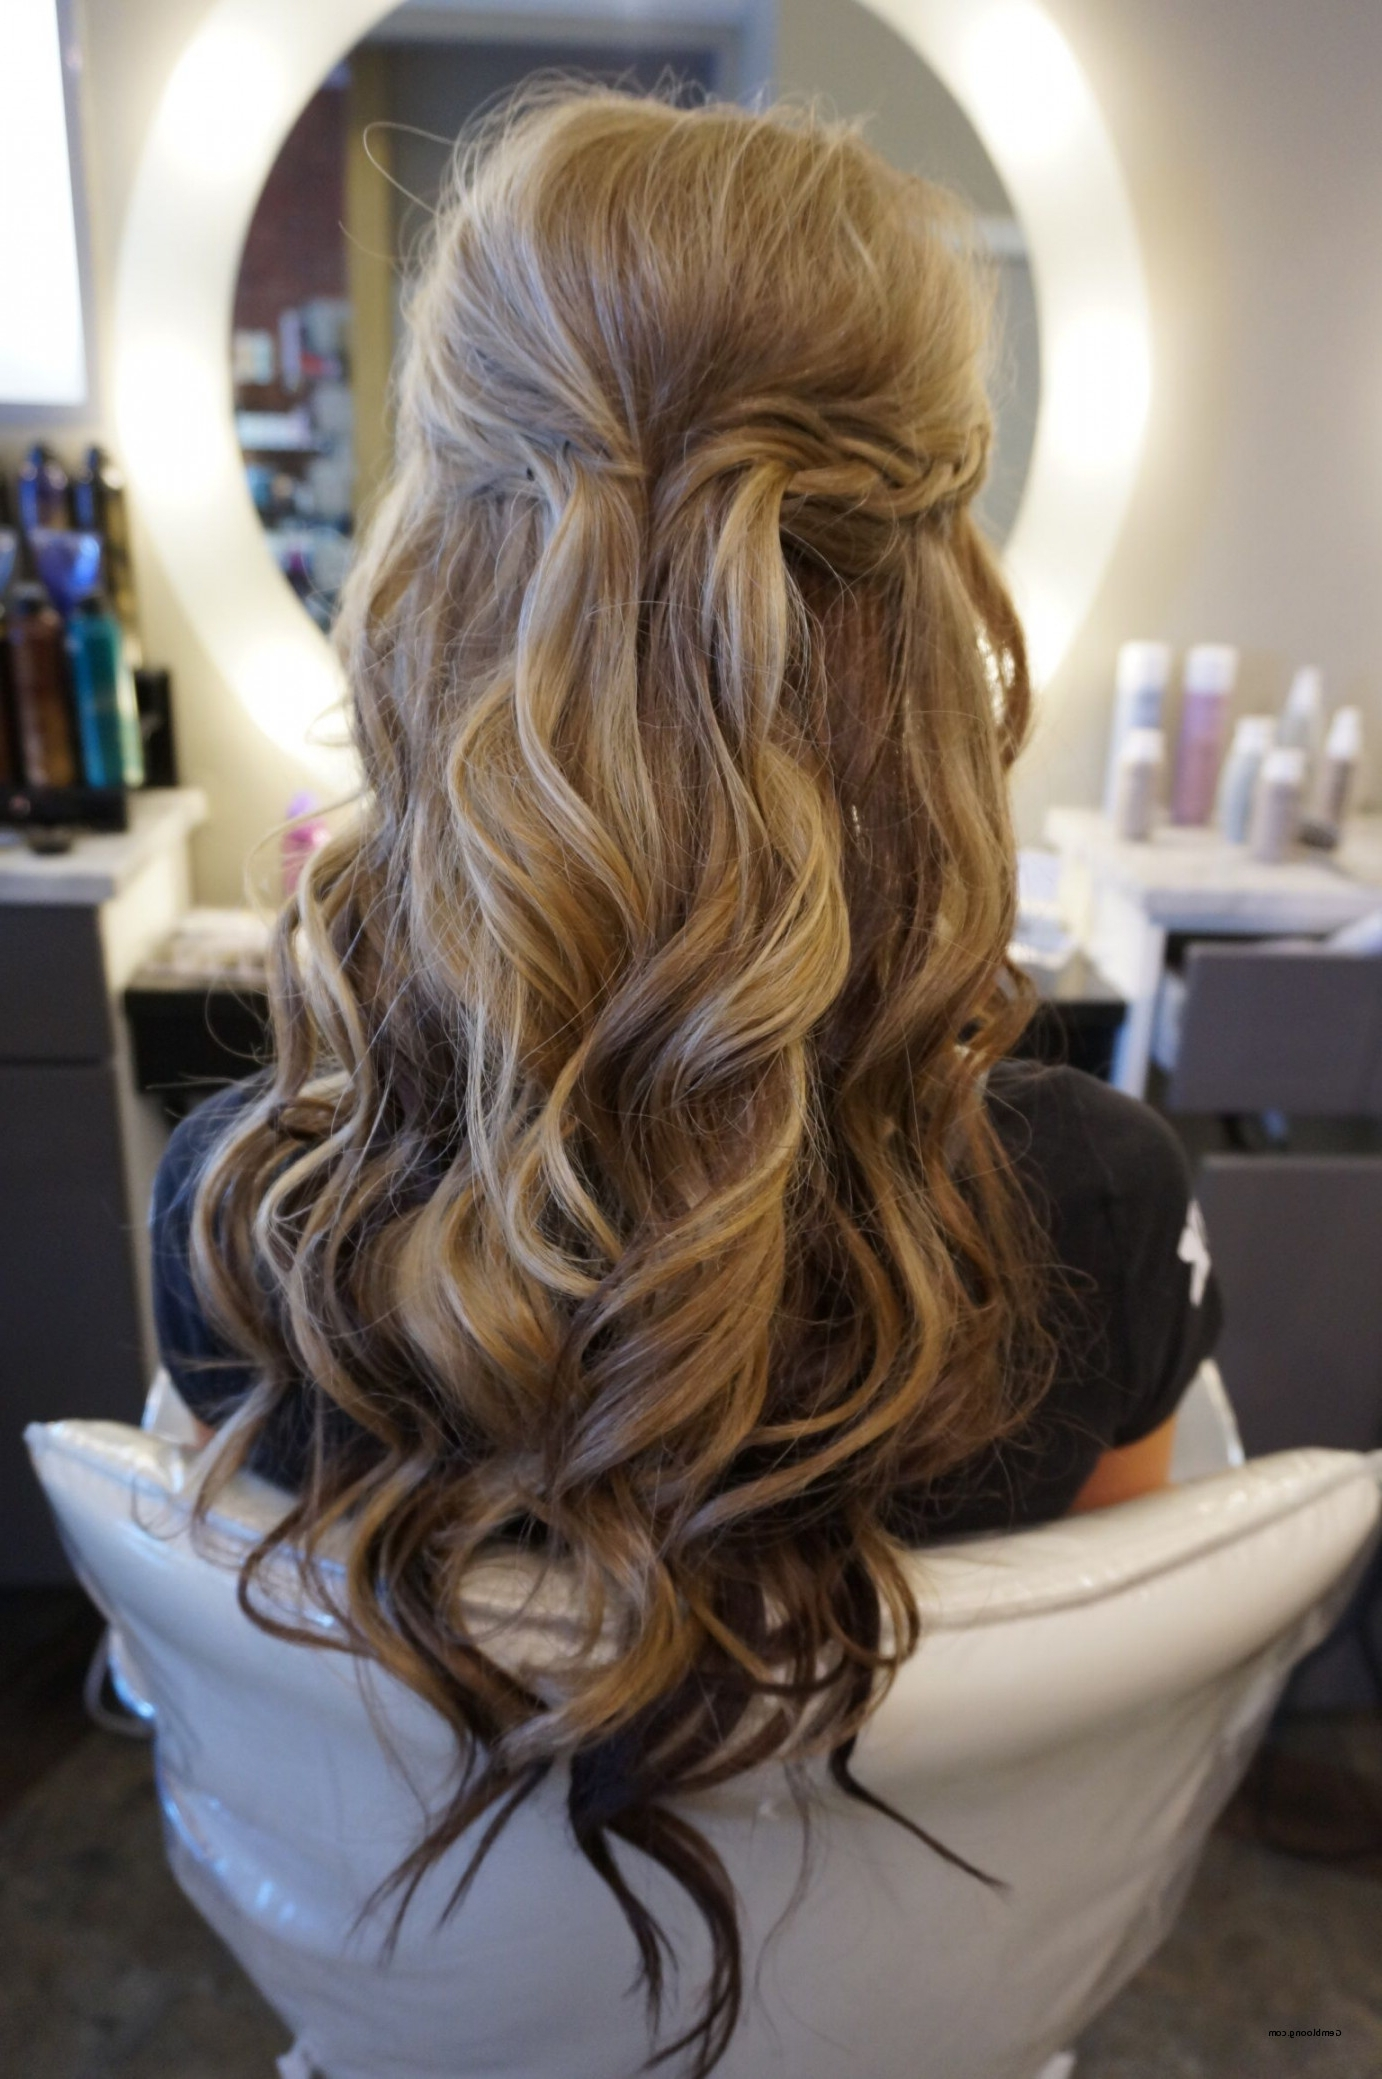 Newest Wedding Hairstyles For Long Loose Curls Hair Regarding Wedding Hairstyles Loose Curls Unique Long Hair With Loose Curls (View 11 of 15)